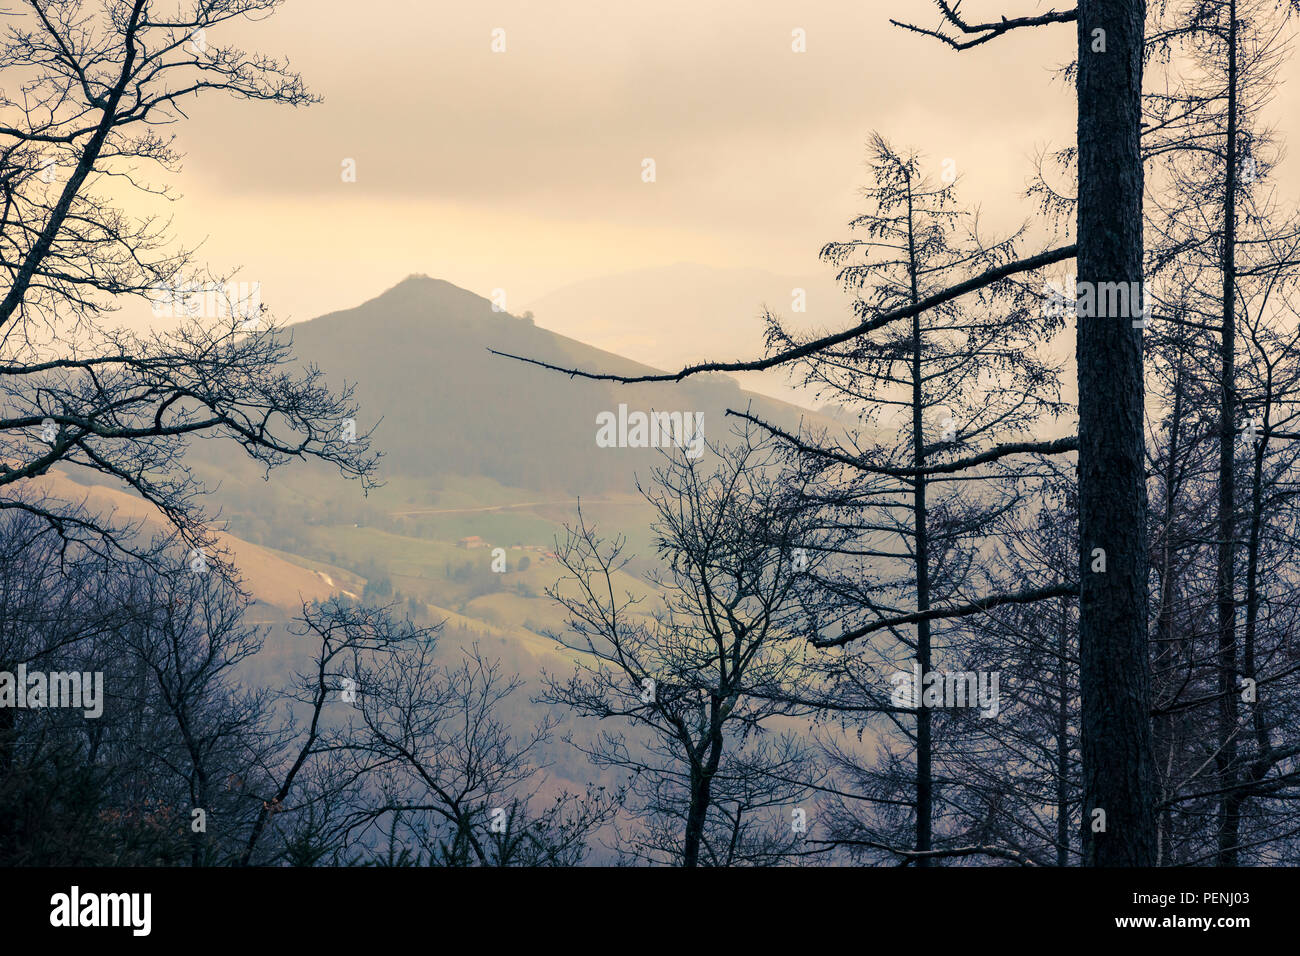 Conifer forest. - Stock Image